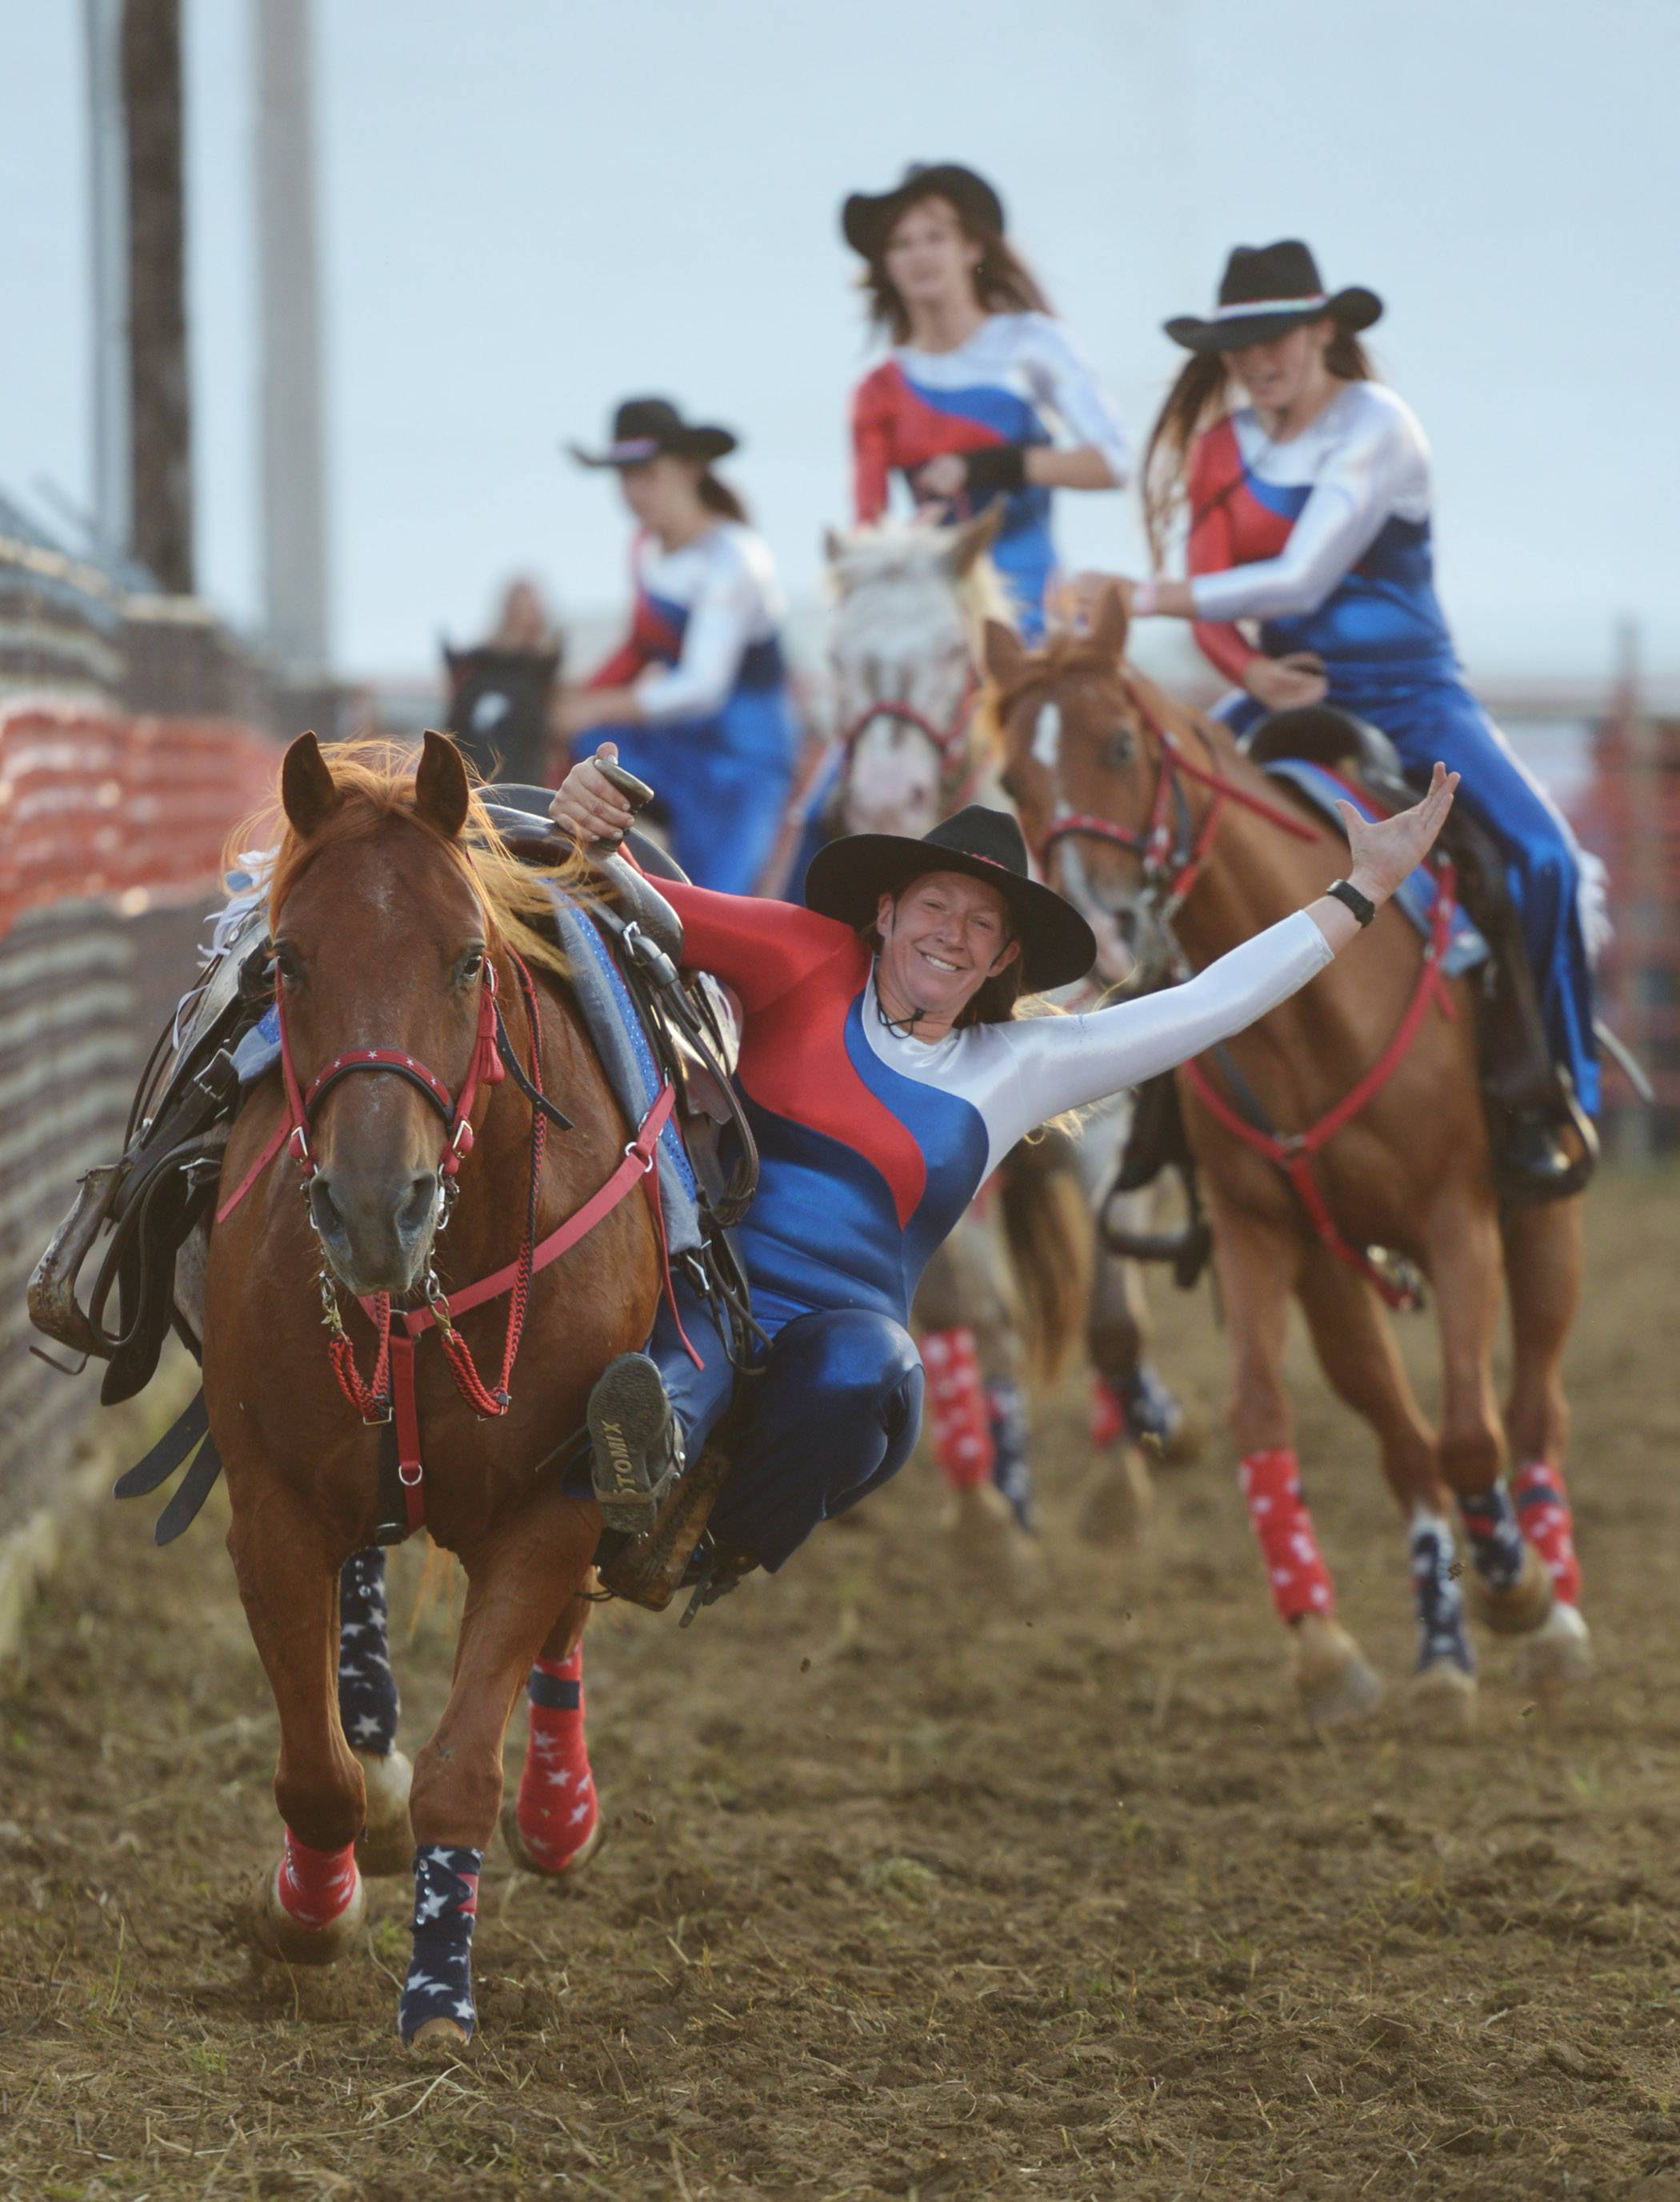 The MidWest Renegades Equestrian Drill Team perform at last year's Wauconda Rodeo. The team will perform both days of this year's event.